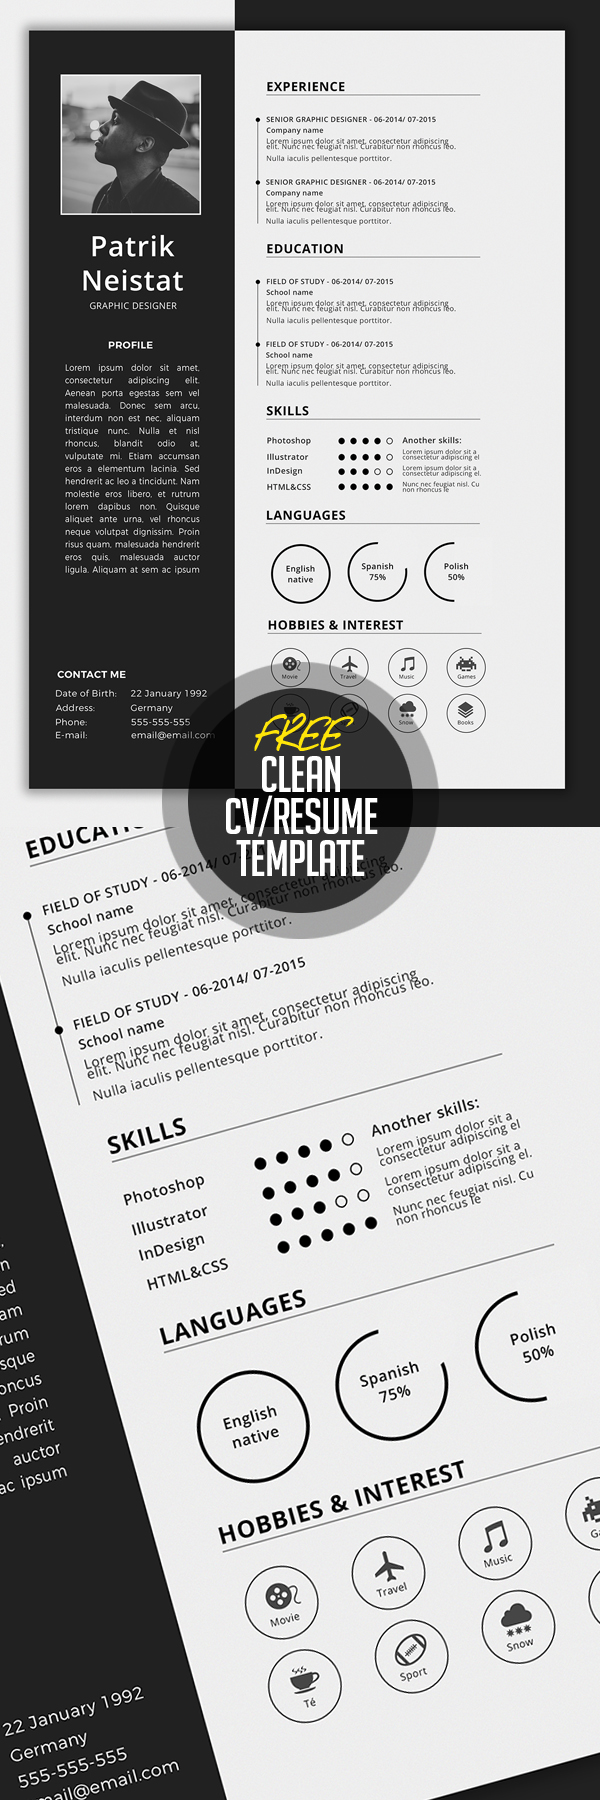 Simple CV/Resume Template Free Download  Download Free Resume Templates